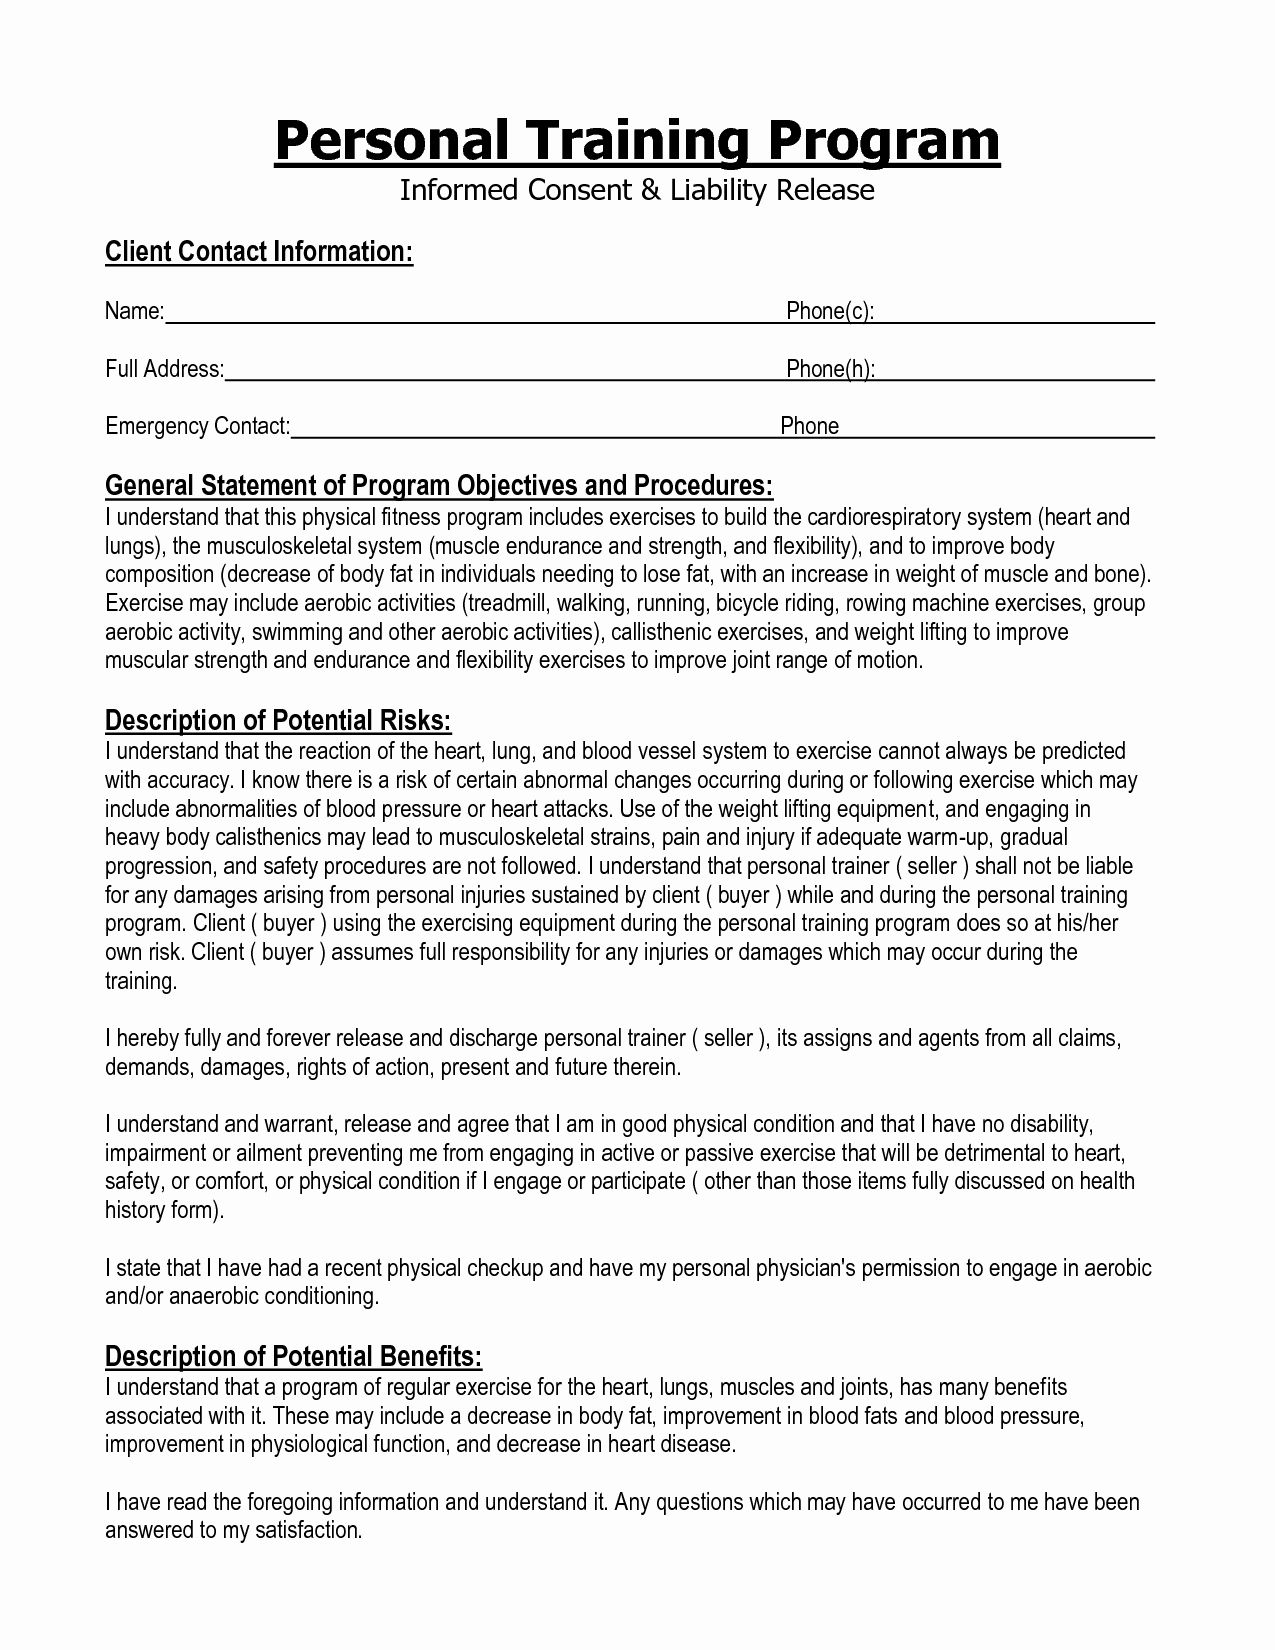 Dog Training Contract Template Awesome Informed Consent form Personal Training Google Search